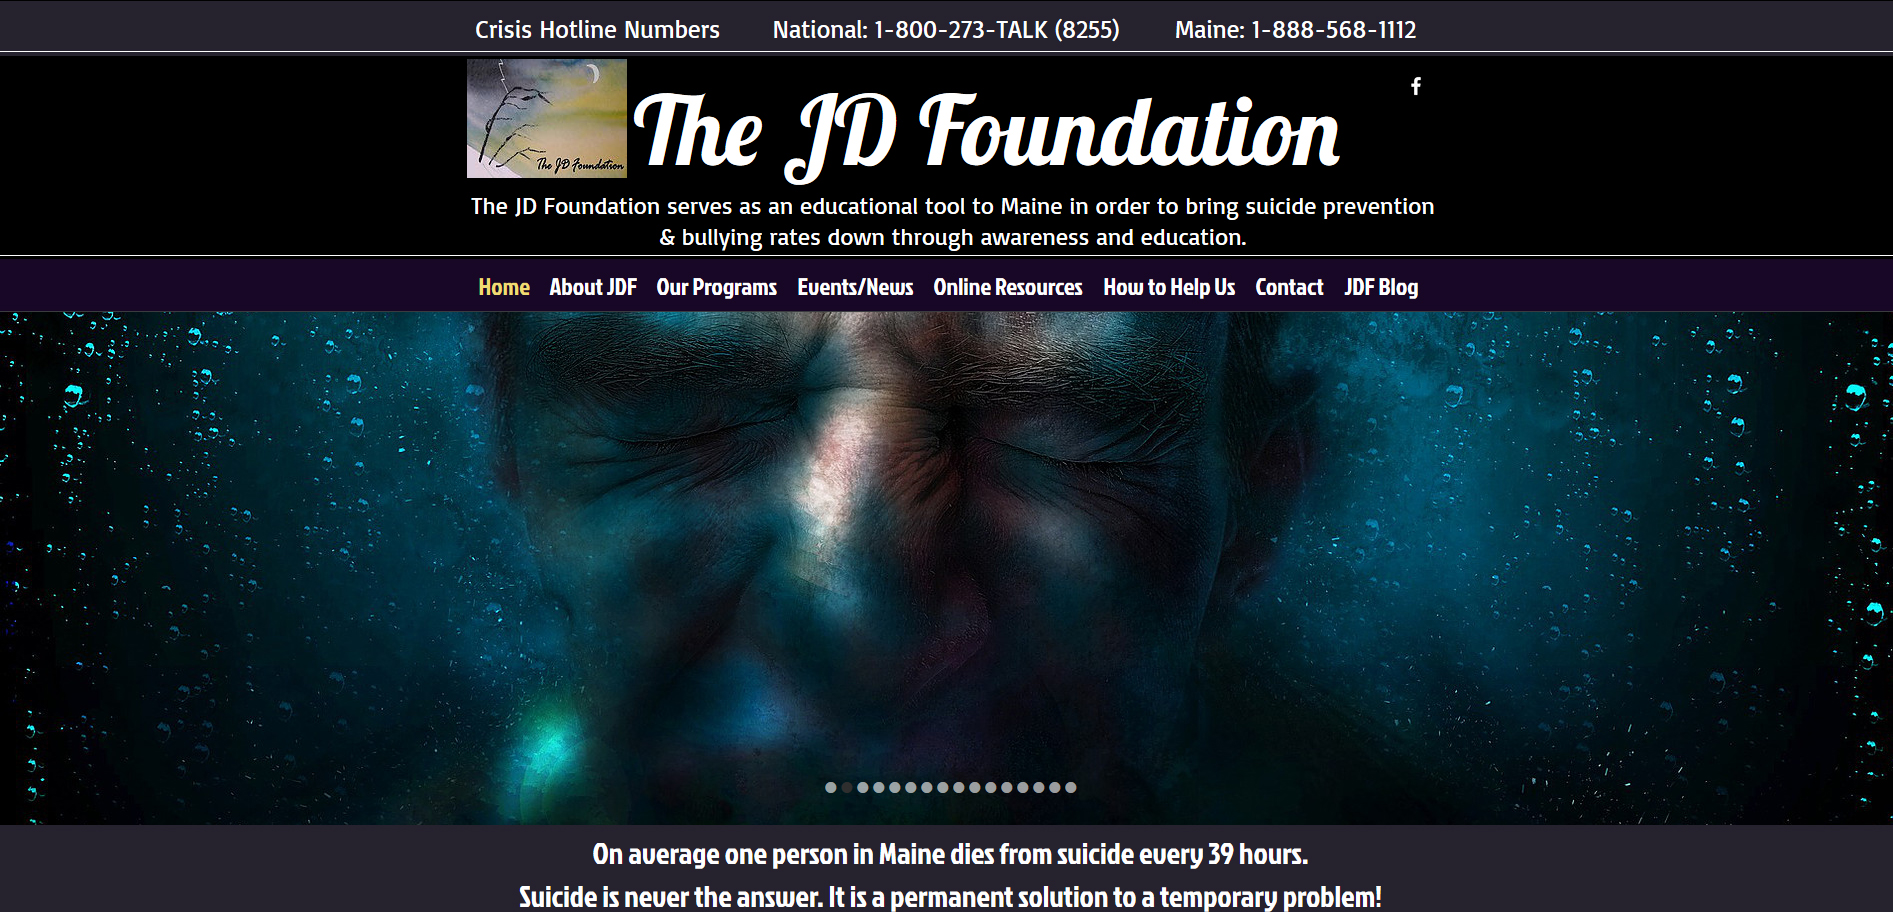 jdfoundationfront